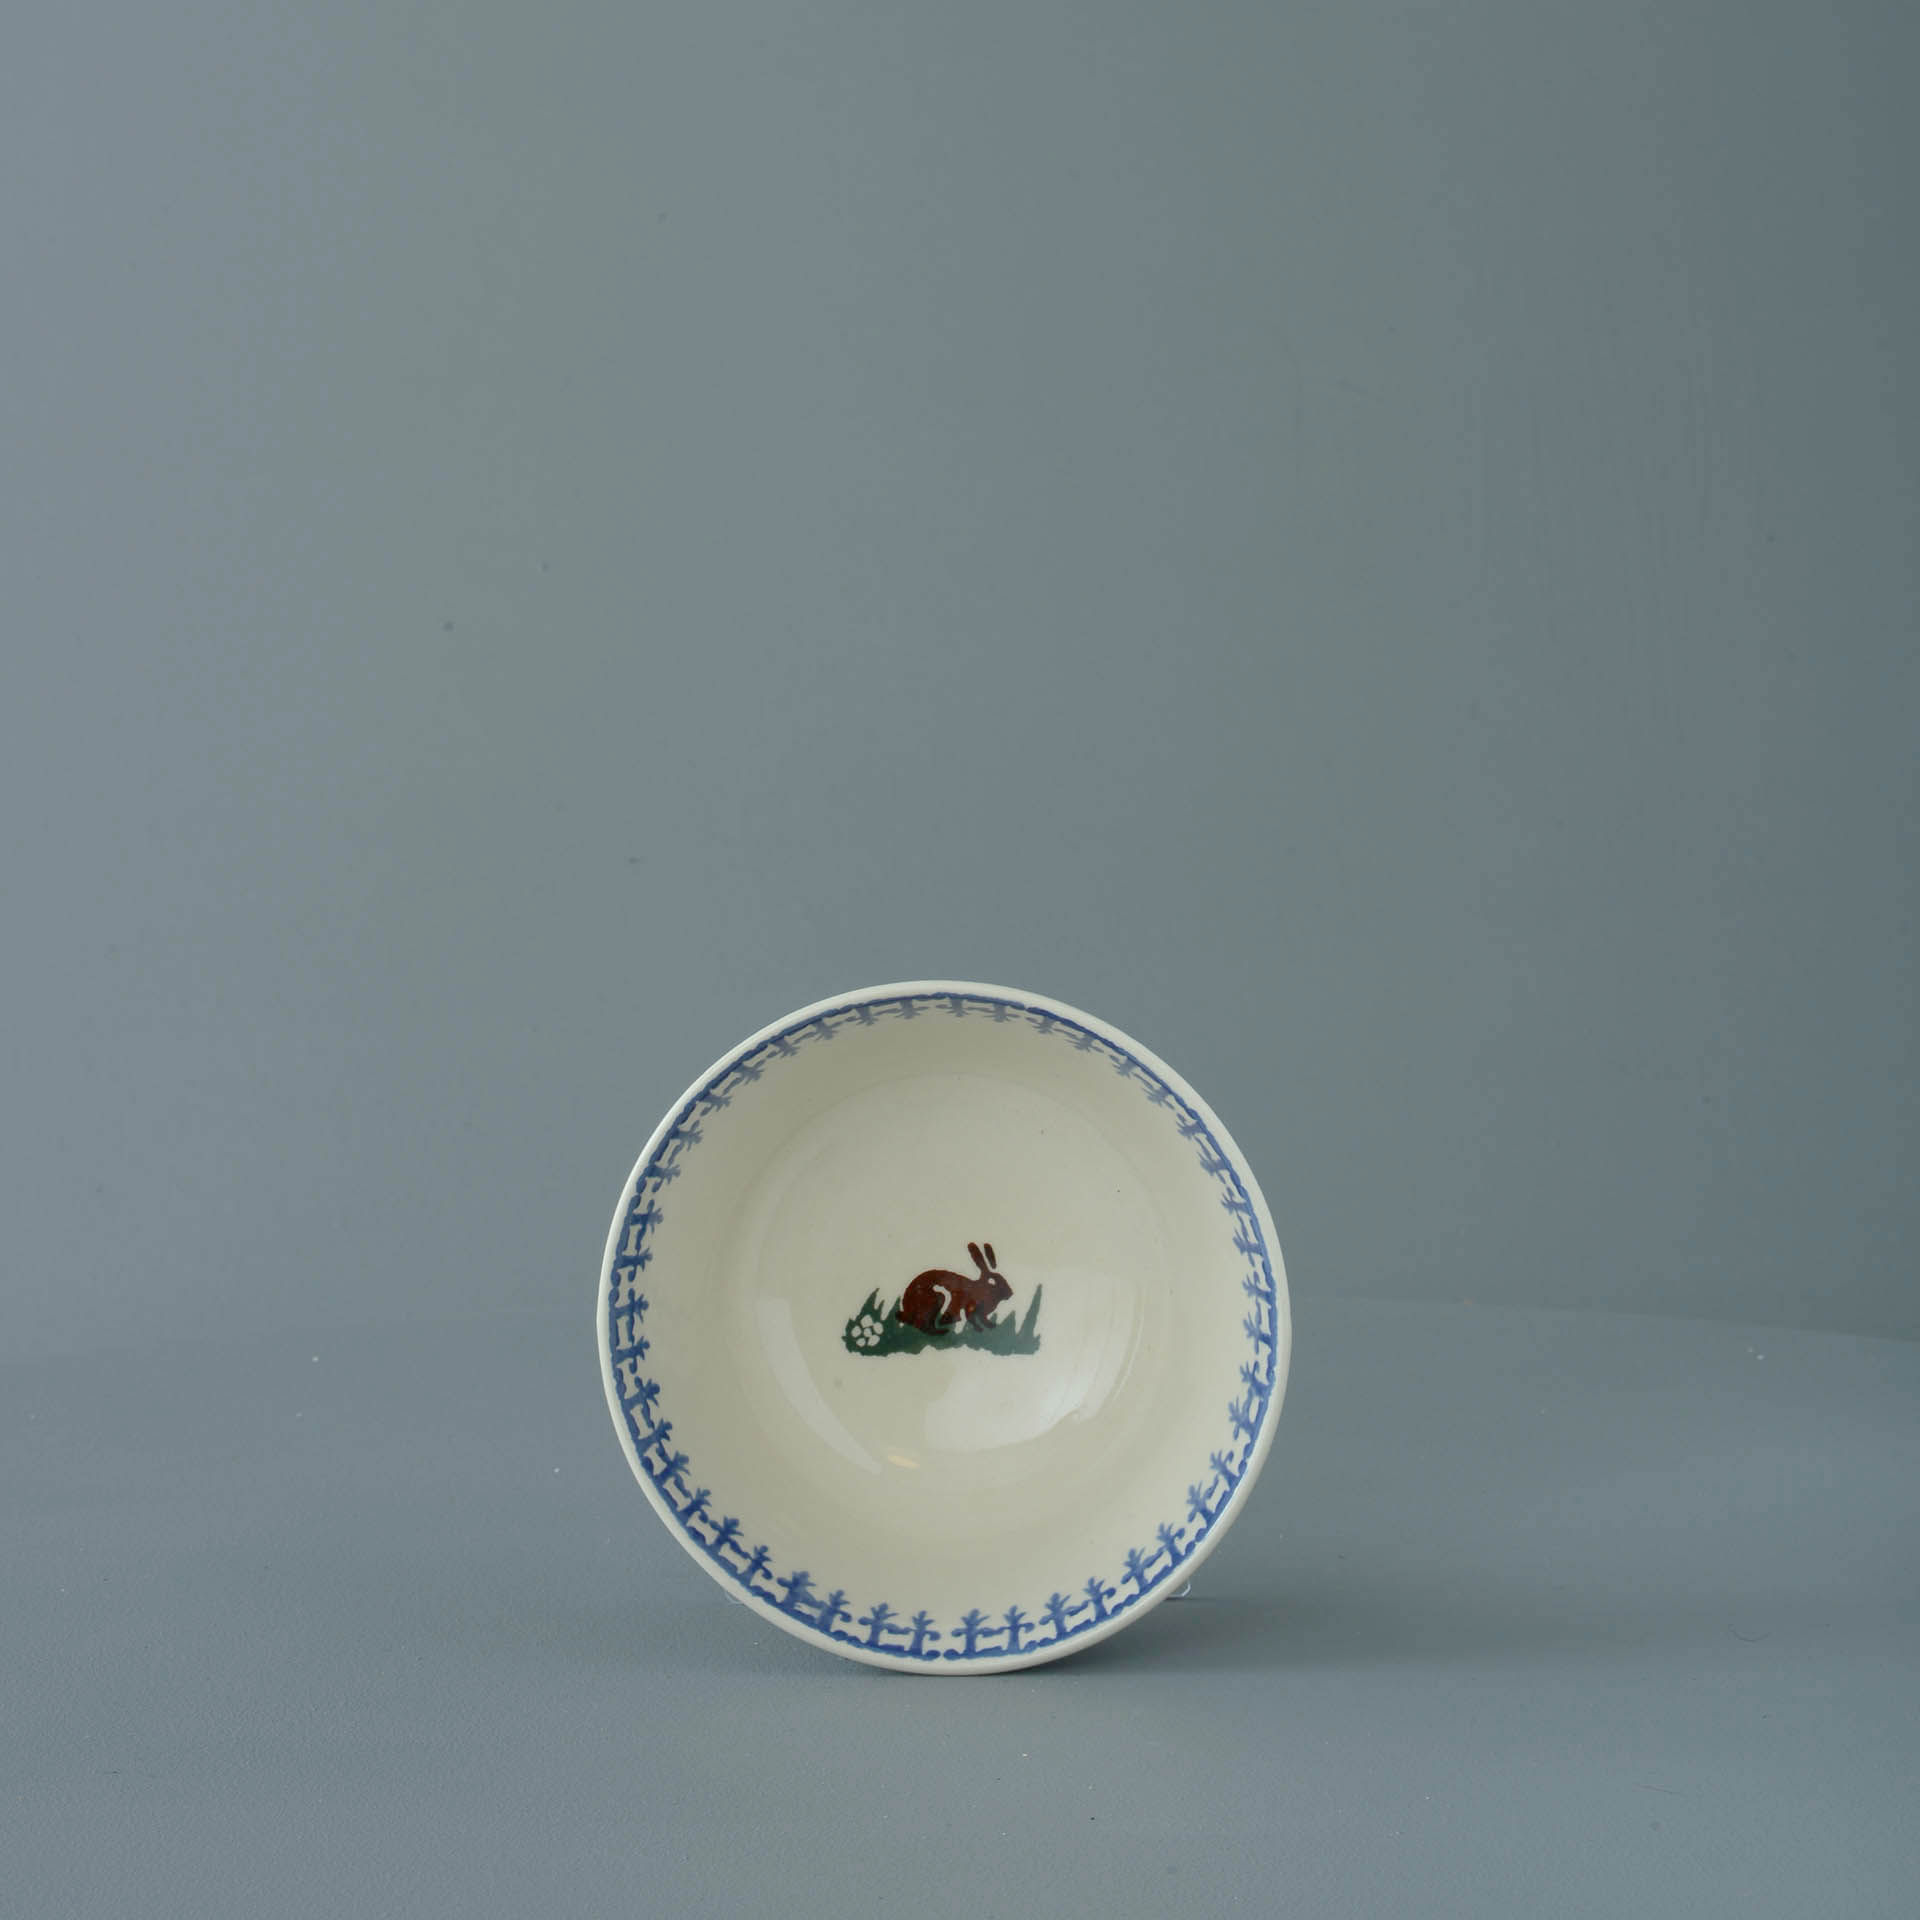 Farm Animals Small Bowl 6.5 x 12 cm